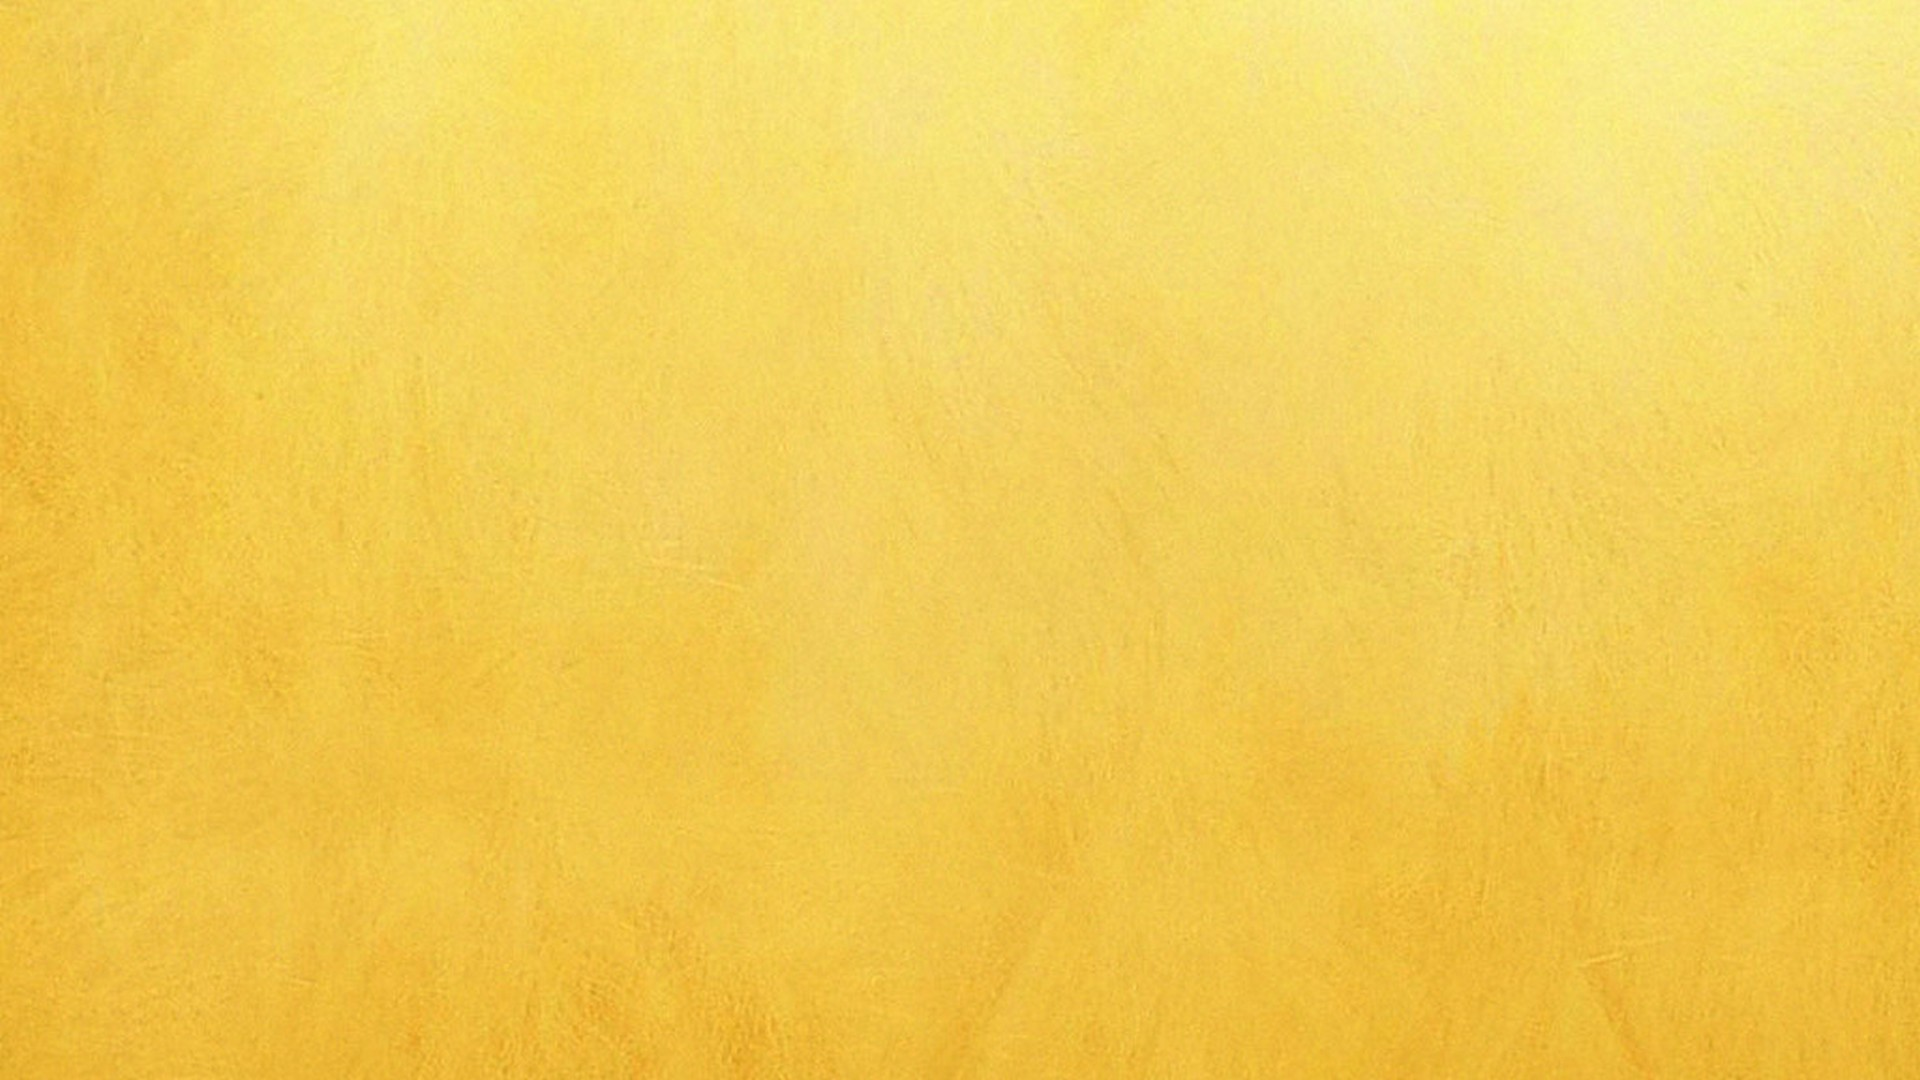 Plain Gold Background Wallpaper HD 1920x1080